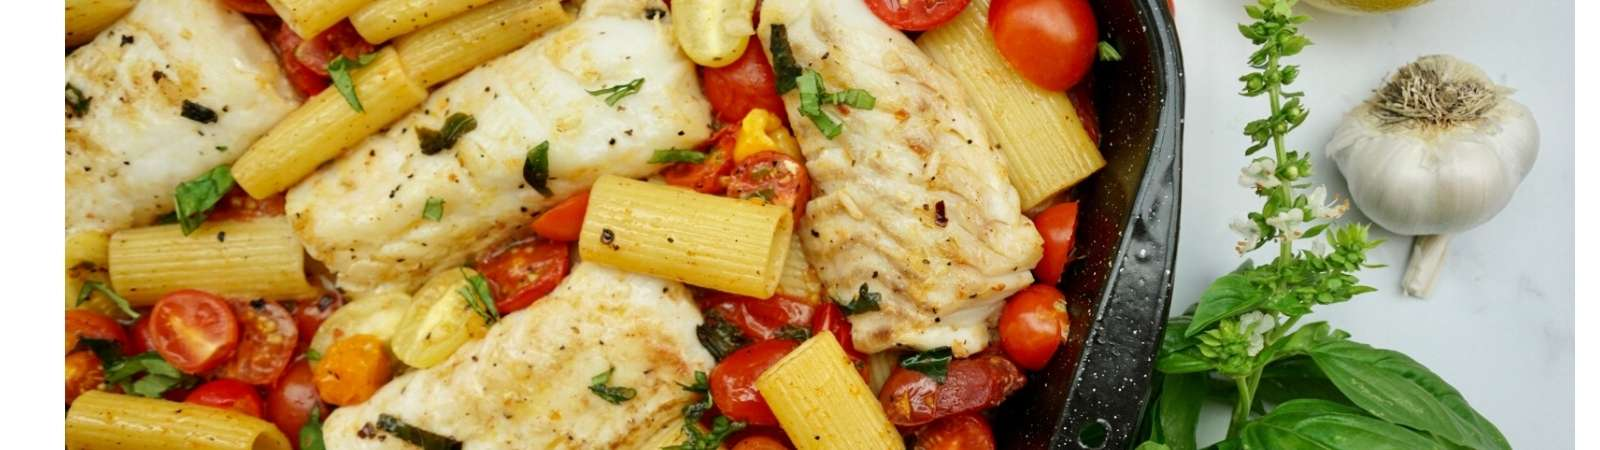 cod pasta with tomatoes and basil